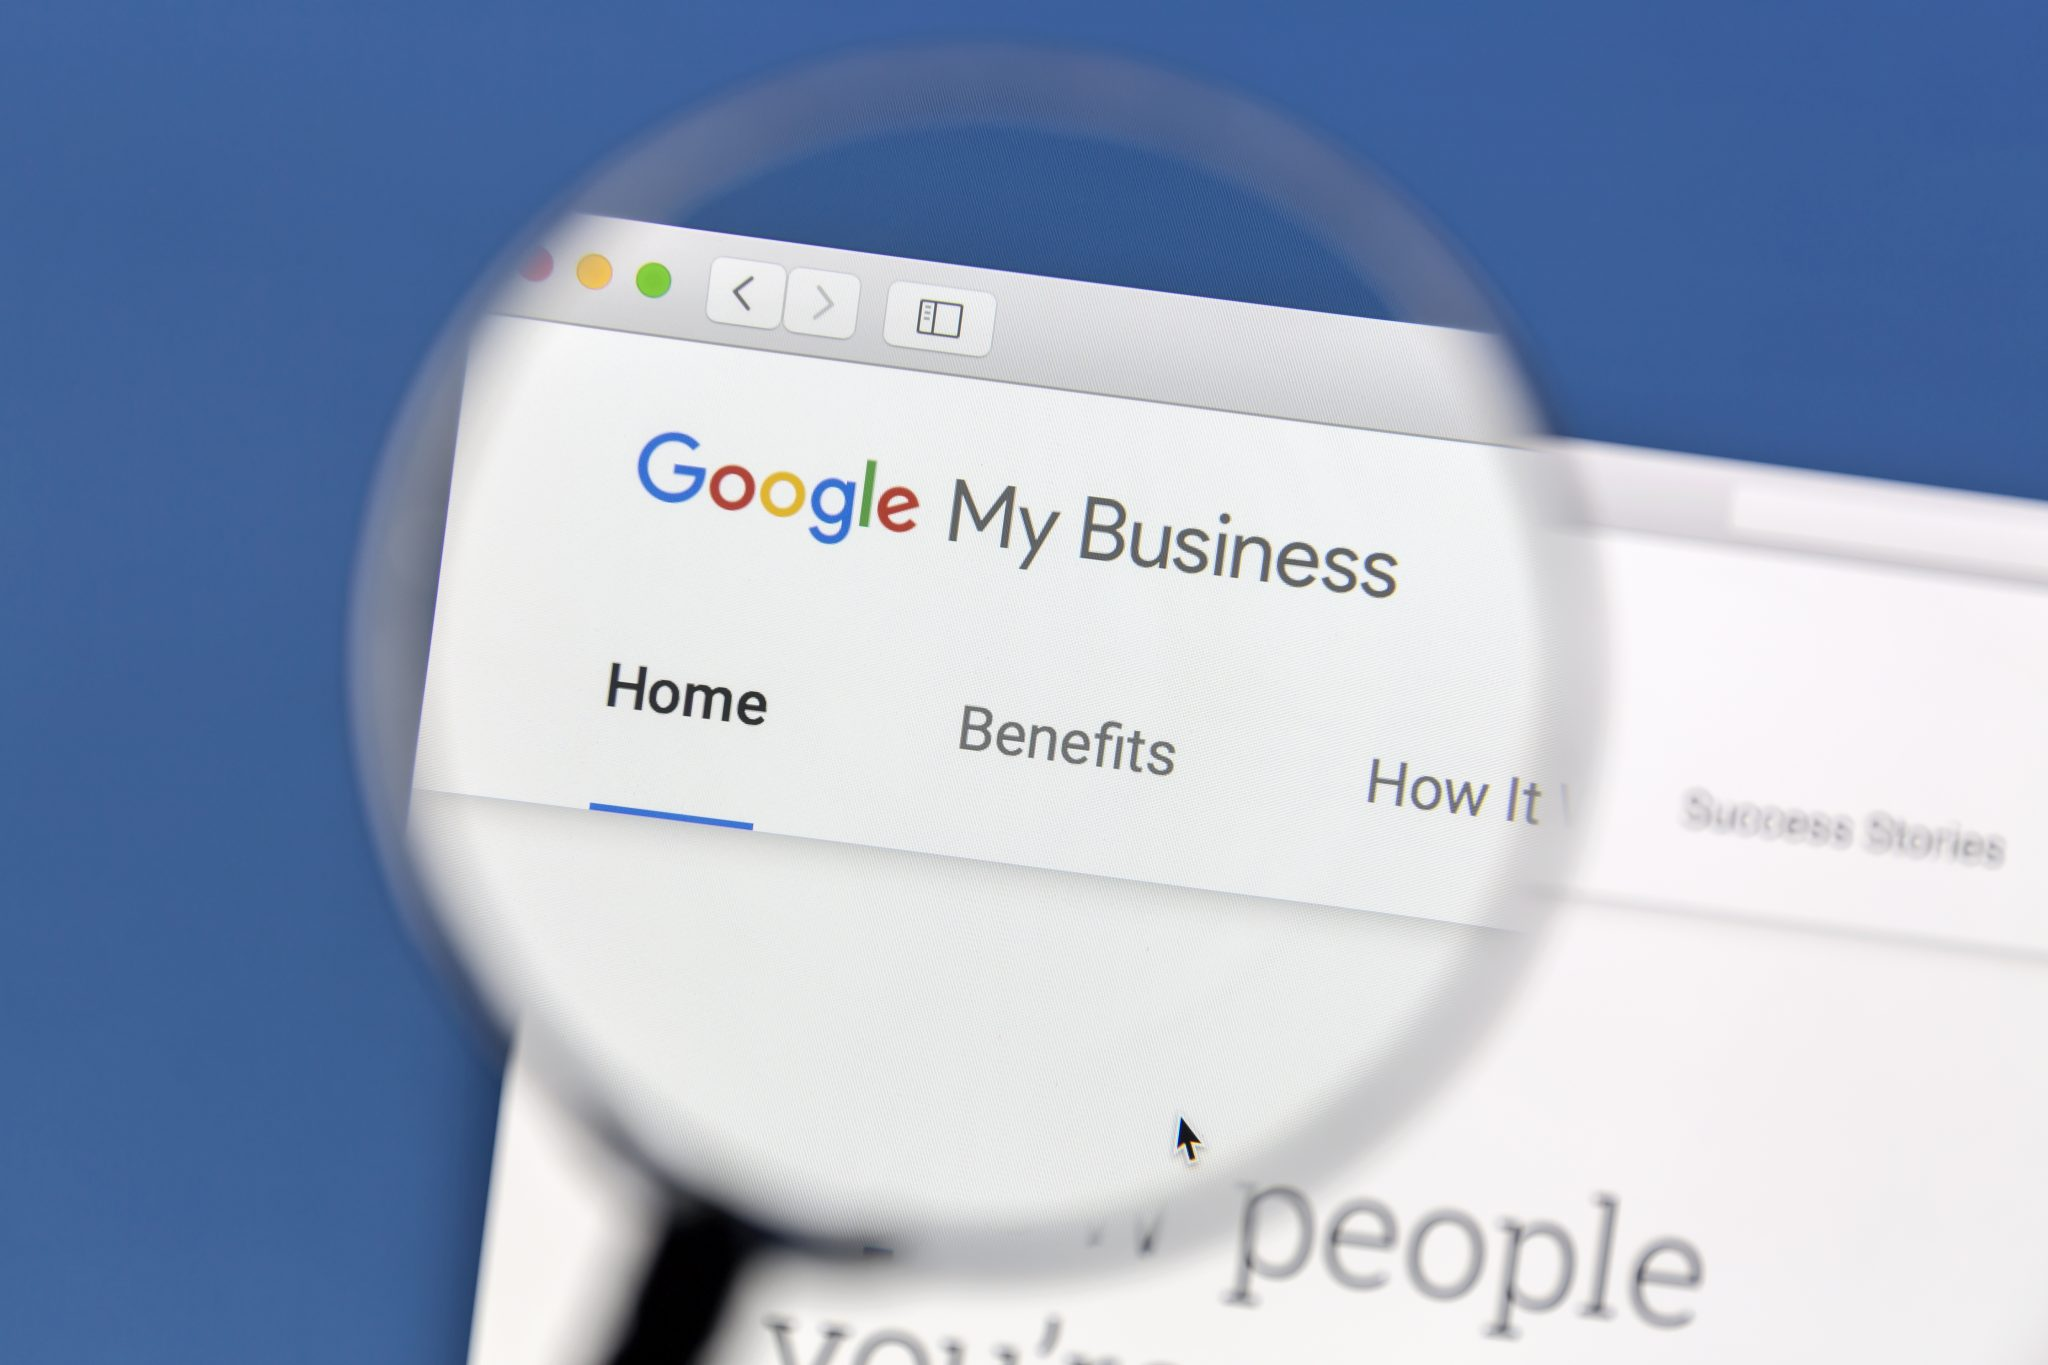 The Power of Google My Business and How to Use It